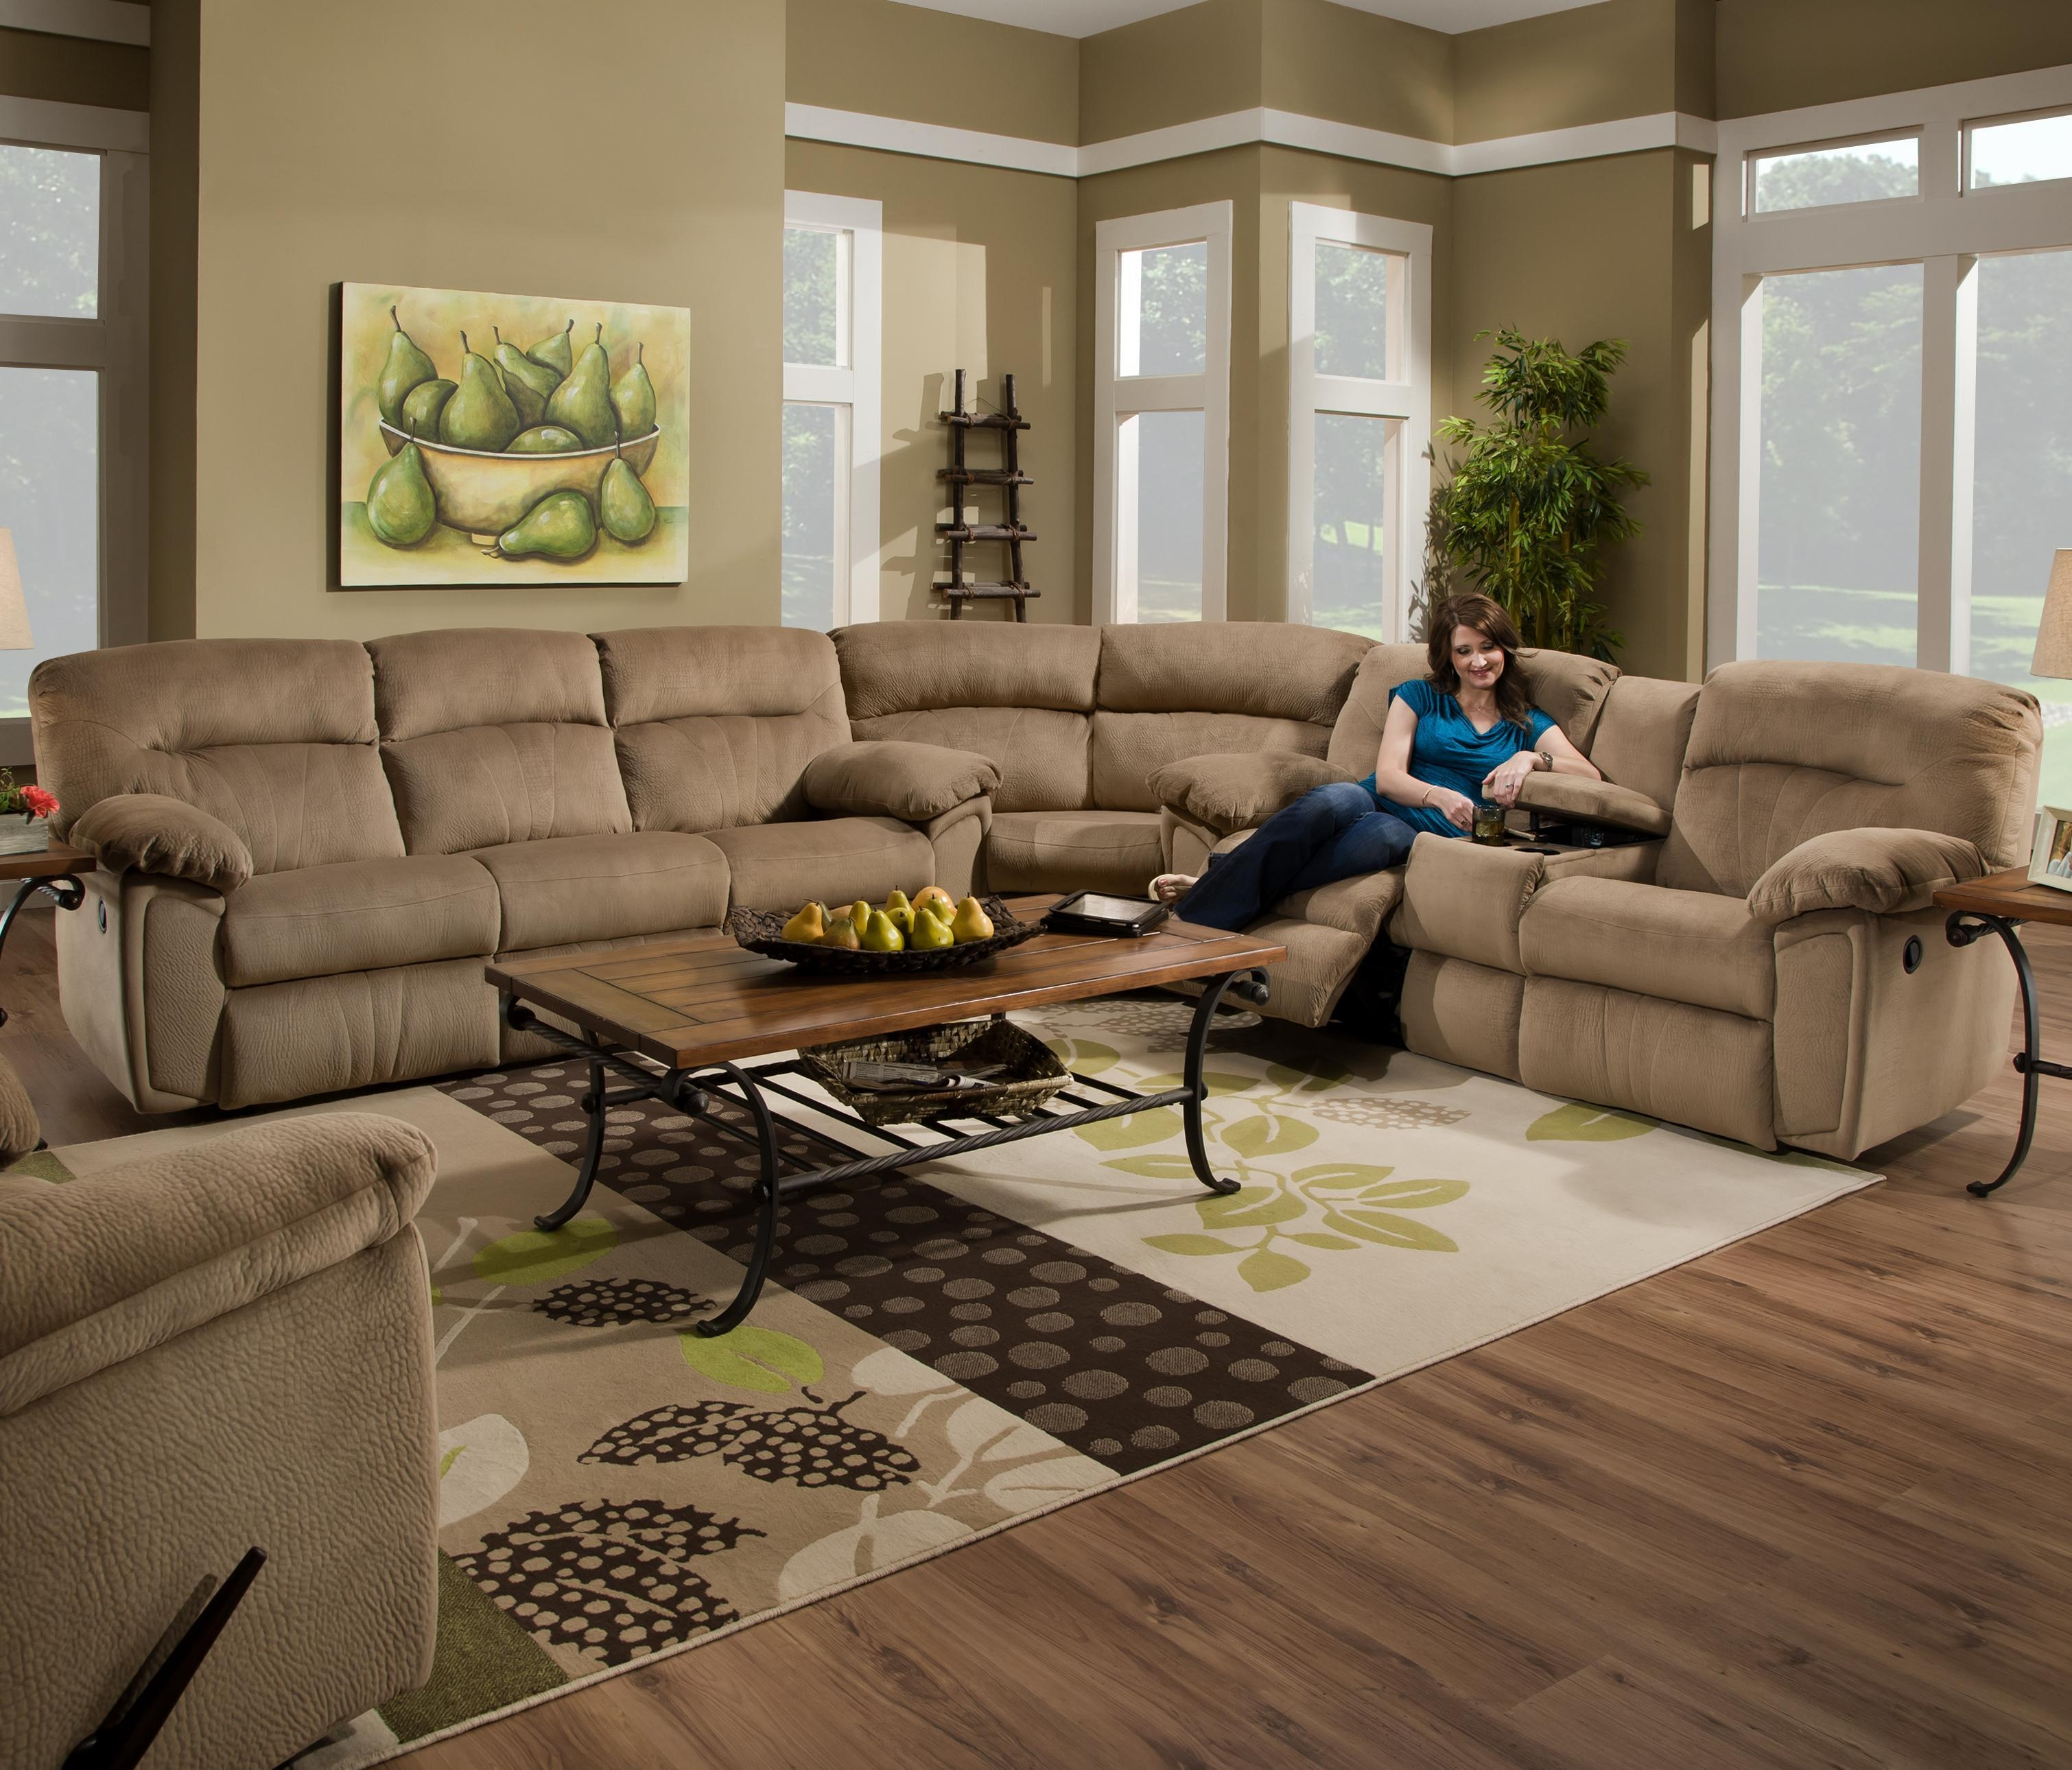 Decorating: Fill Your Home With Comfy Costco Sectionals Sofa For Within 6 Piece Sectional Sofas Couches (Image 9 of 20)